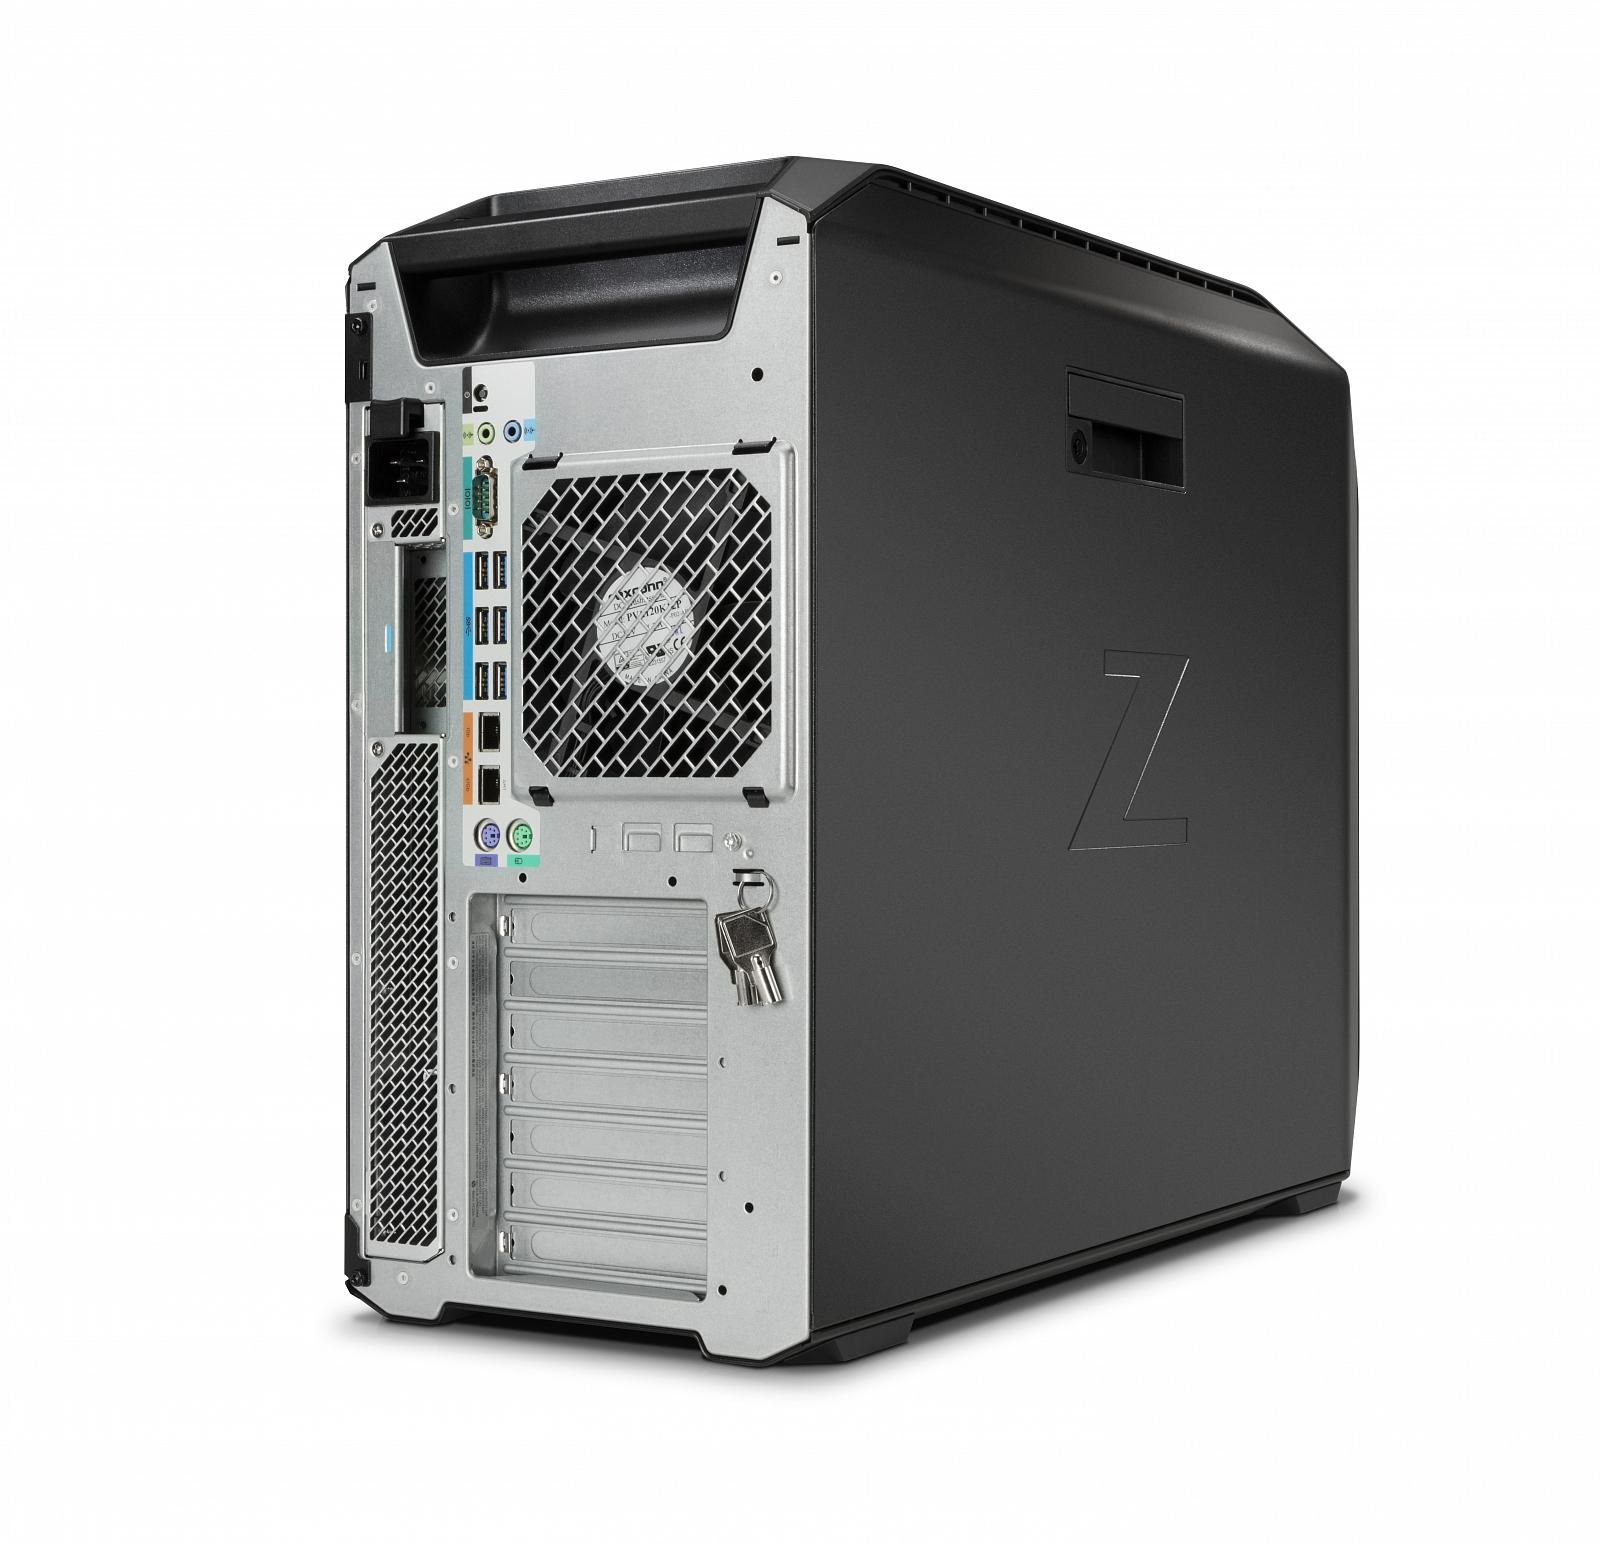 Купить Компьютер HP Z8 G4 Workstation (2WU47EA) фото 2